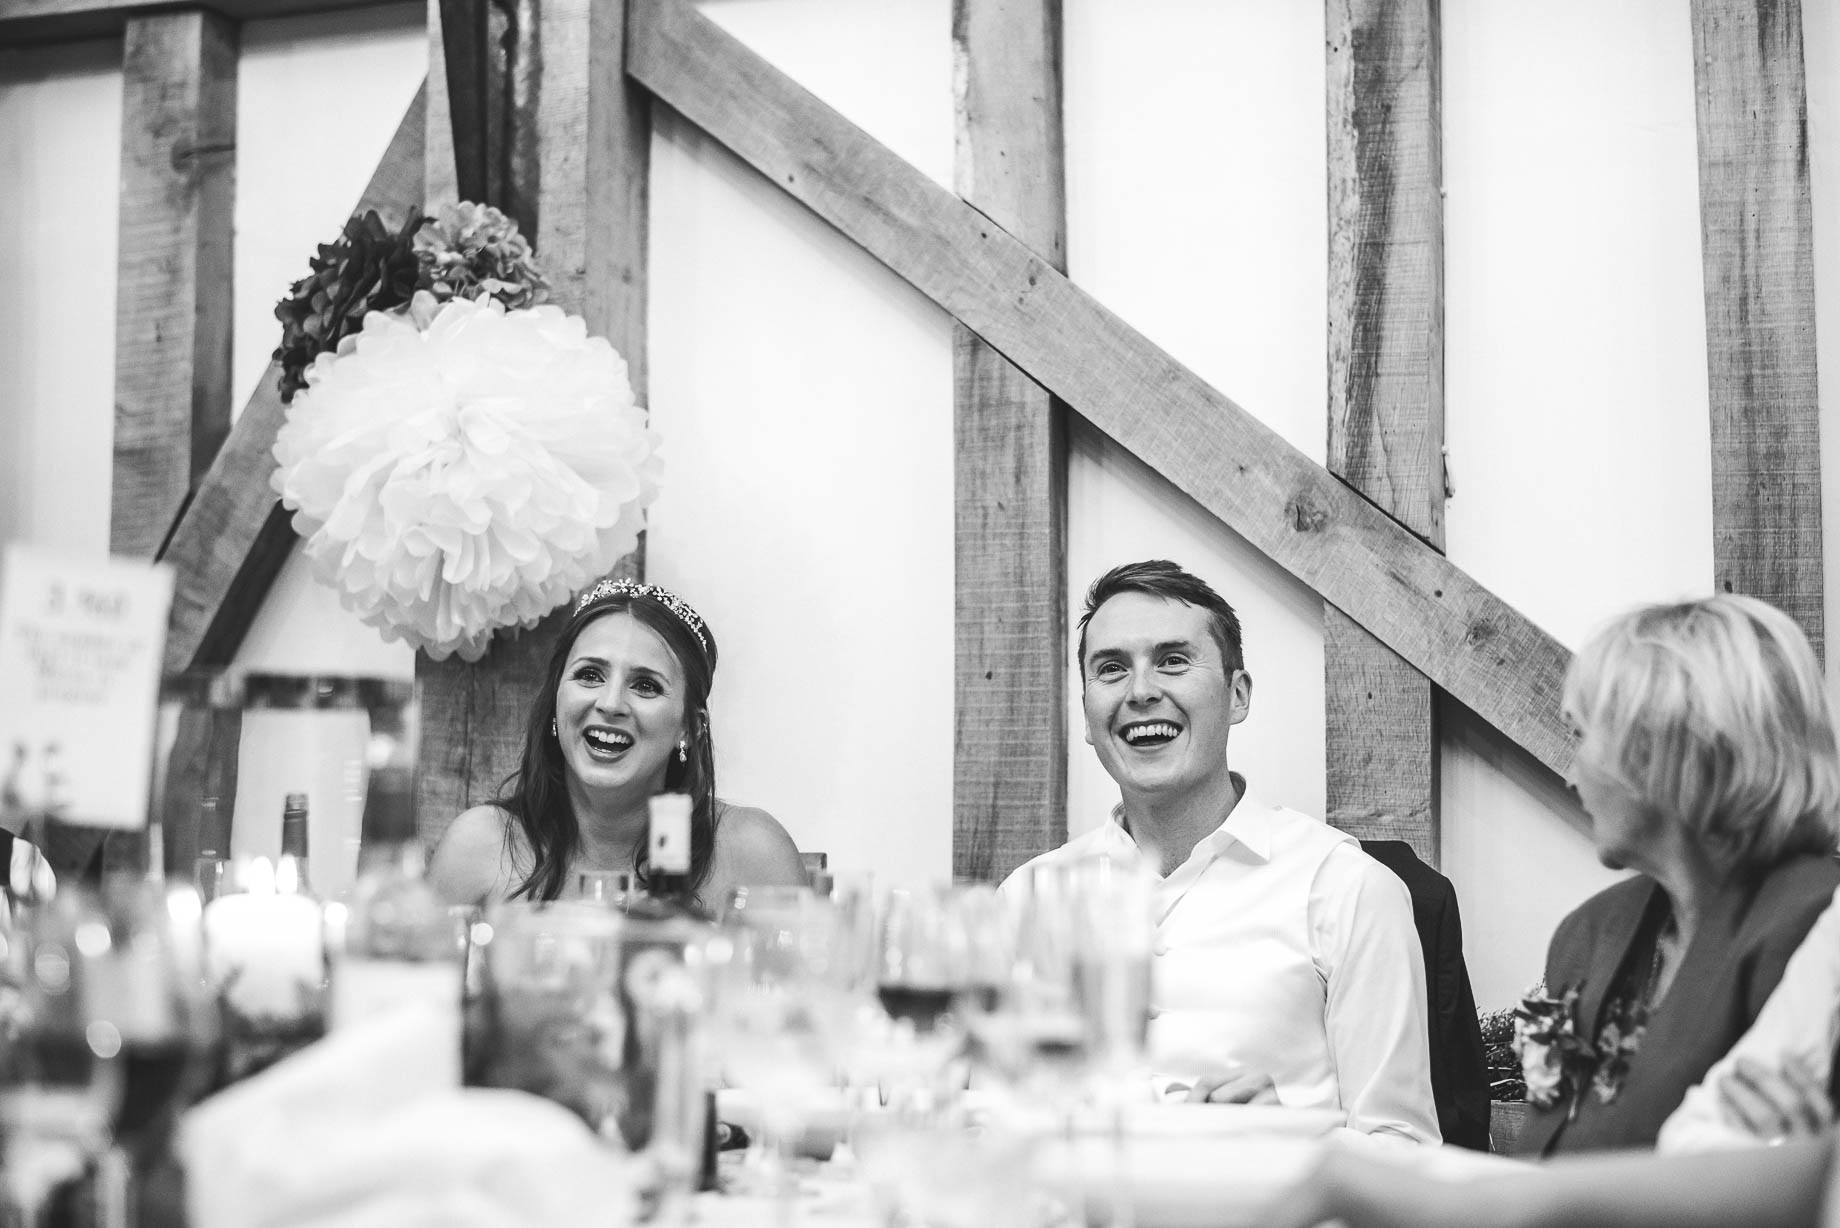 Gate Street Barn wedding photography - Guy Collier - Claire and Andy (162 of 192)